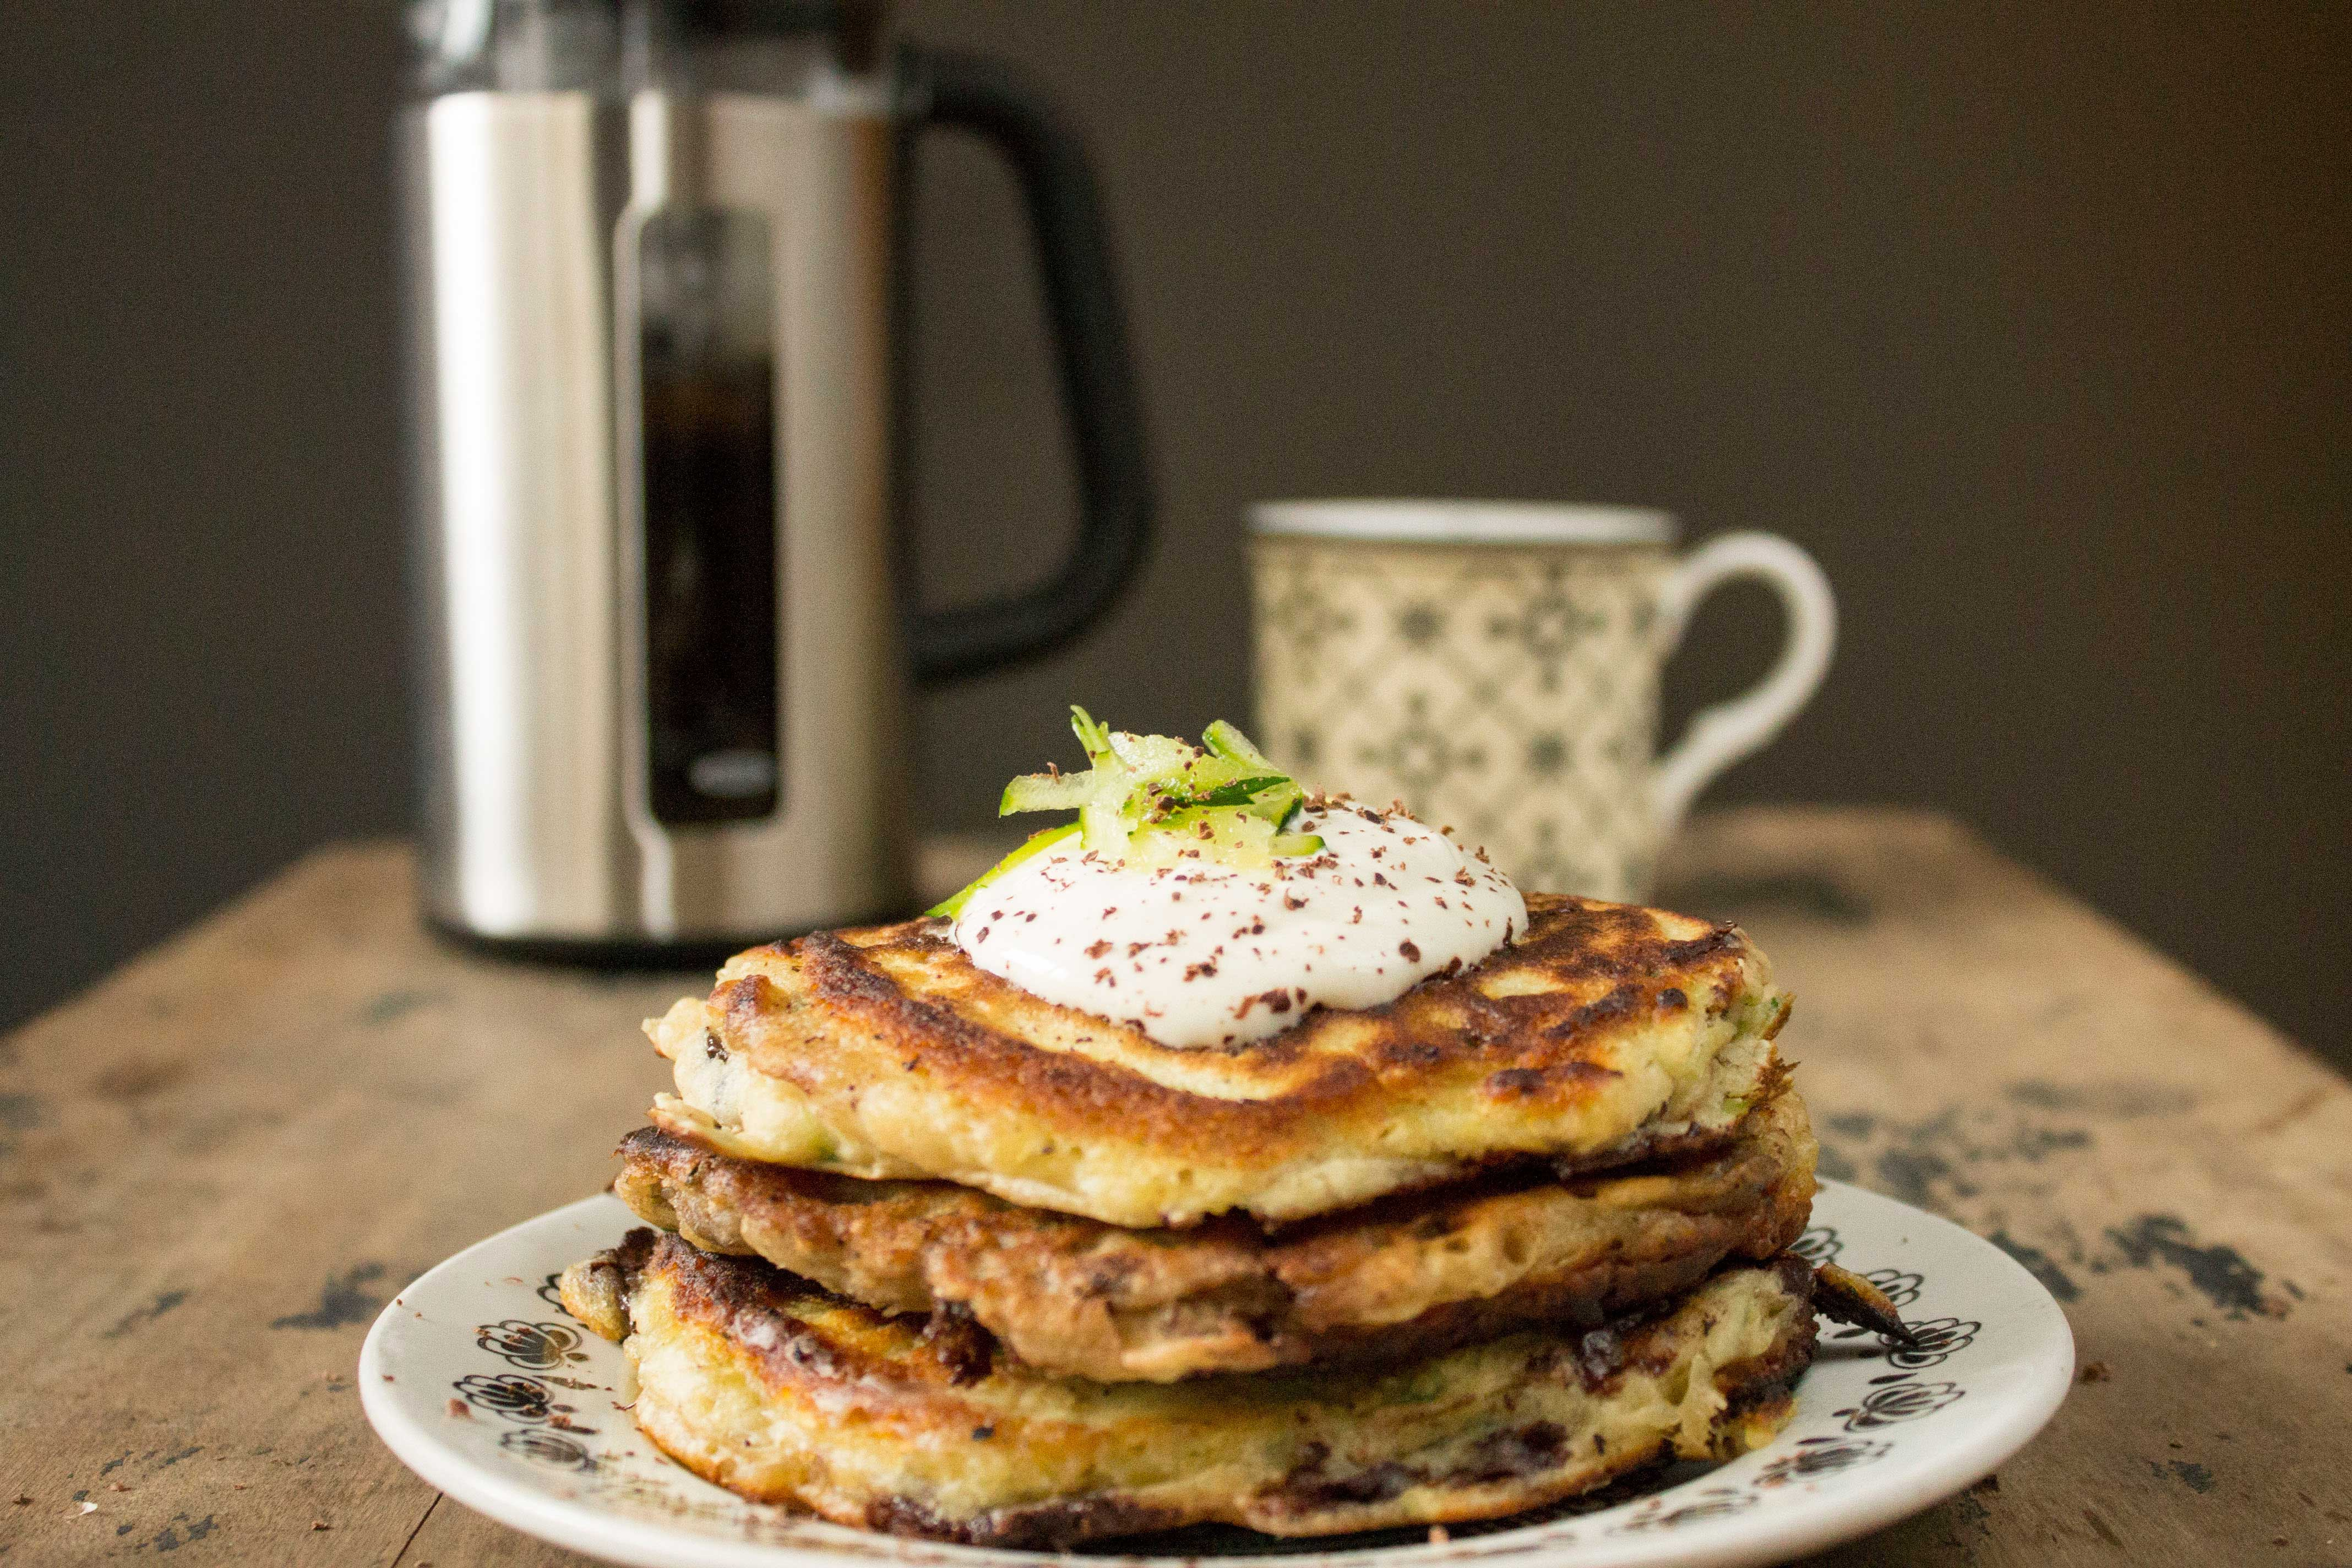 Courgette and Chocolate Pancakes by veggie desserts